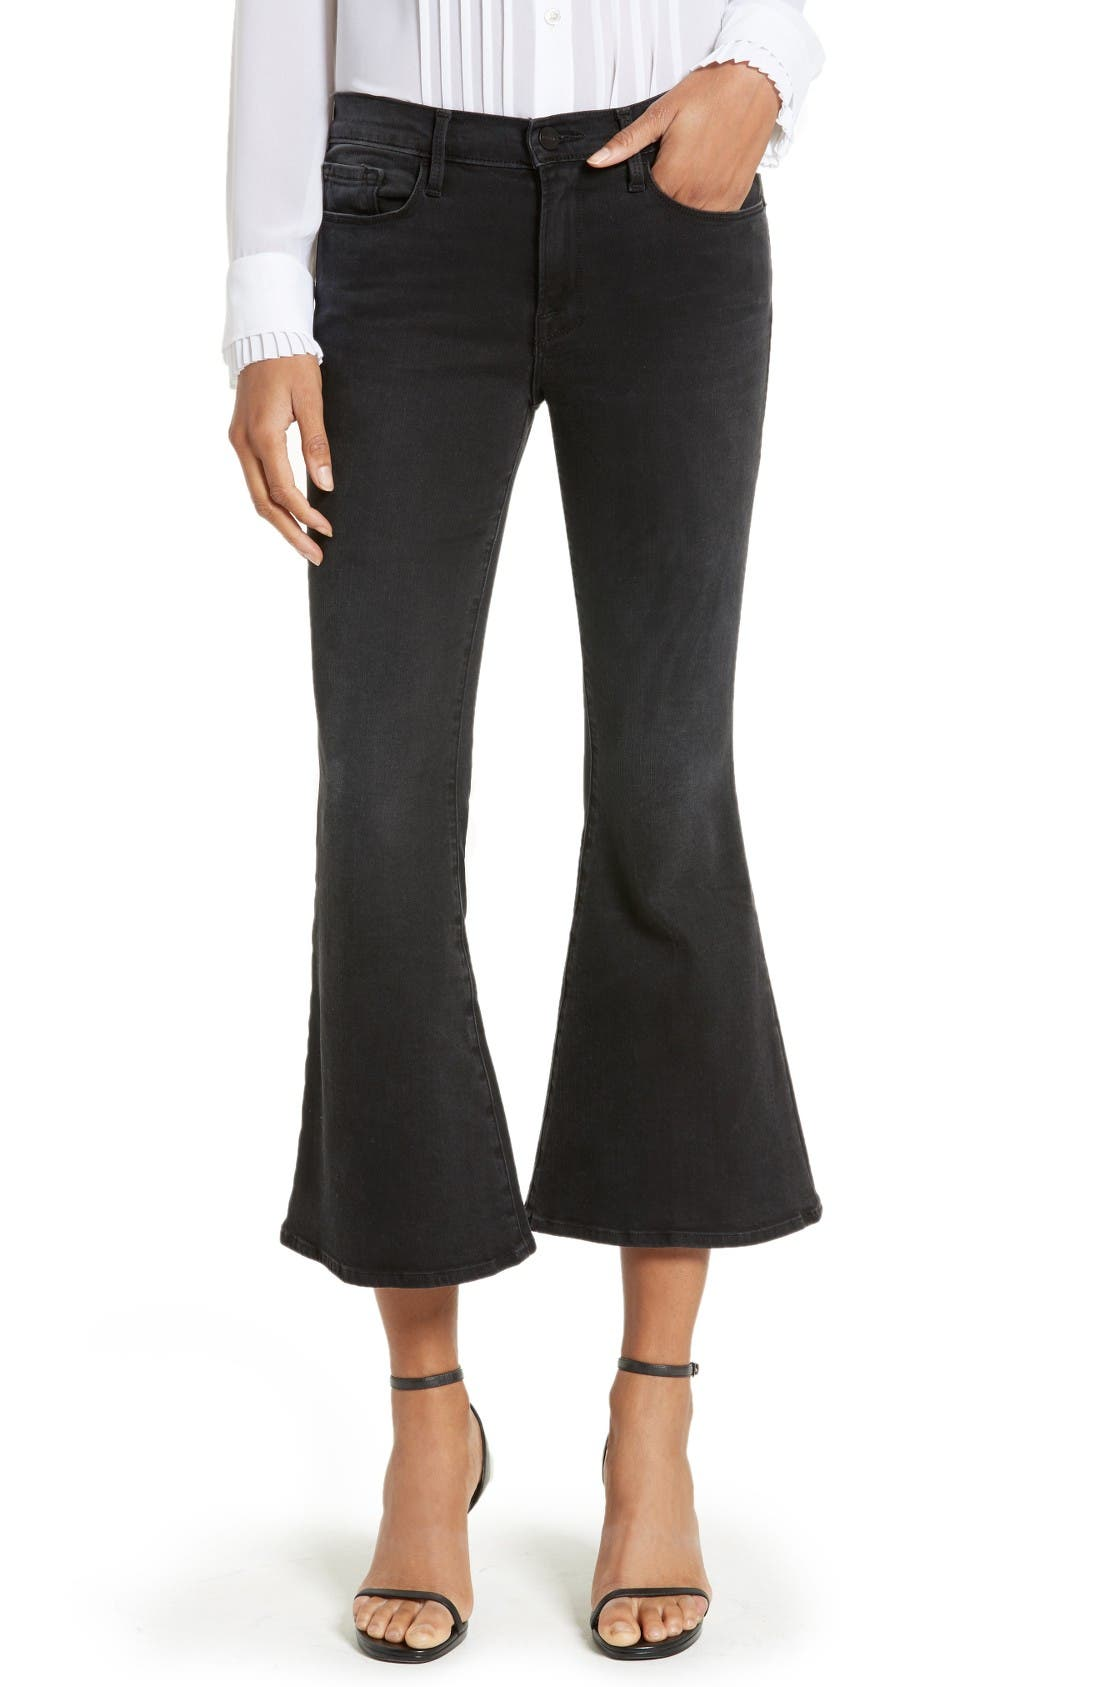 Alternate Image 1 Selected - FRAME Le Crop Bell High Waist Crop Jeans (Whittier)